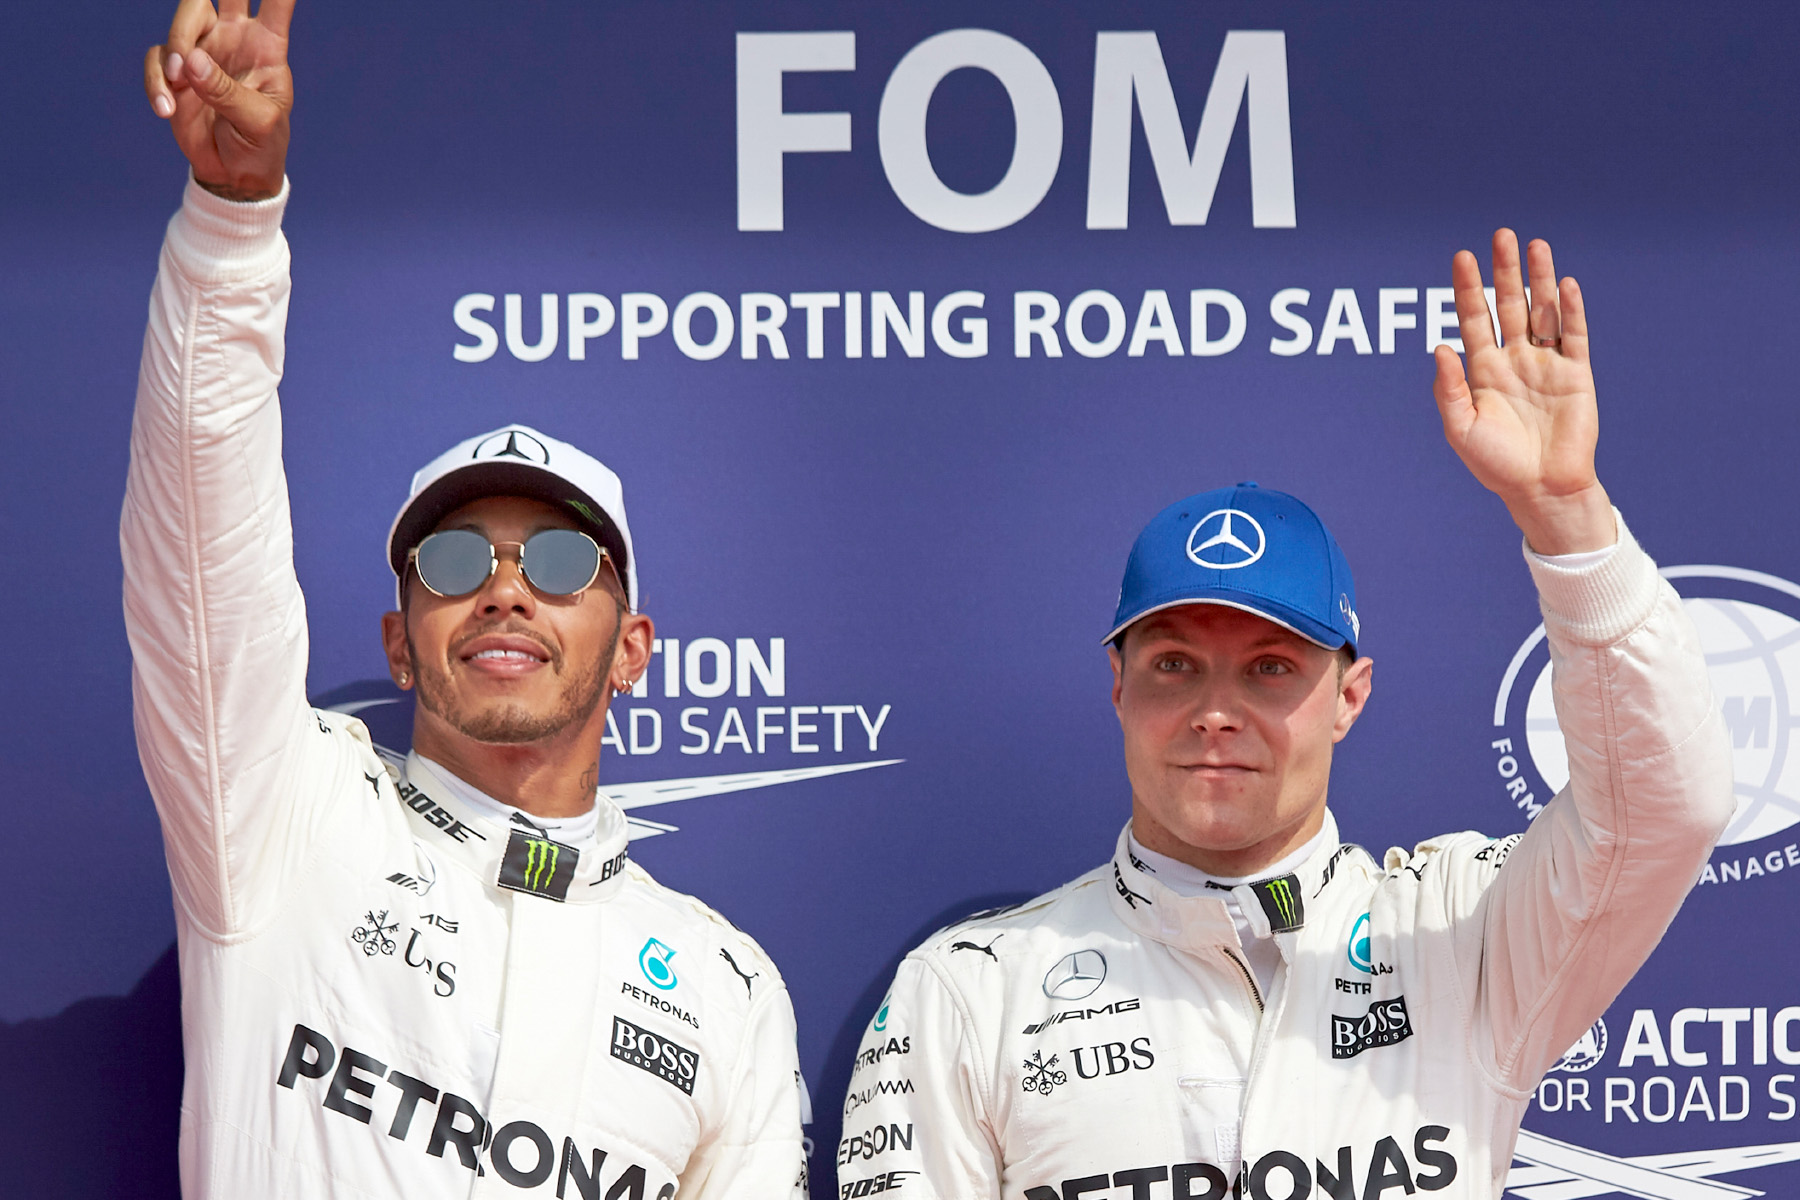 Lewis Hamilton and Valtteri Bottas after qualifying for the 2017 Belgian Grand Prix.